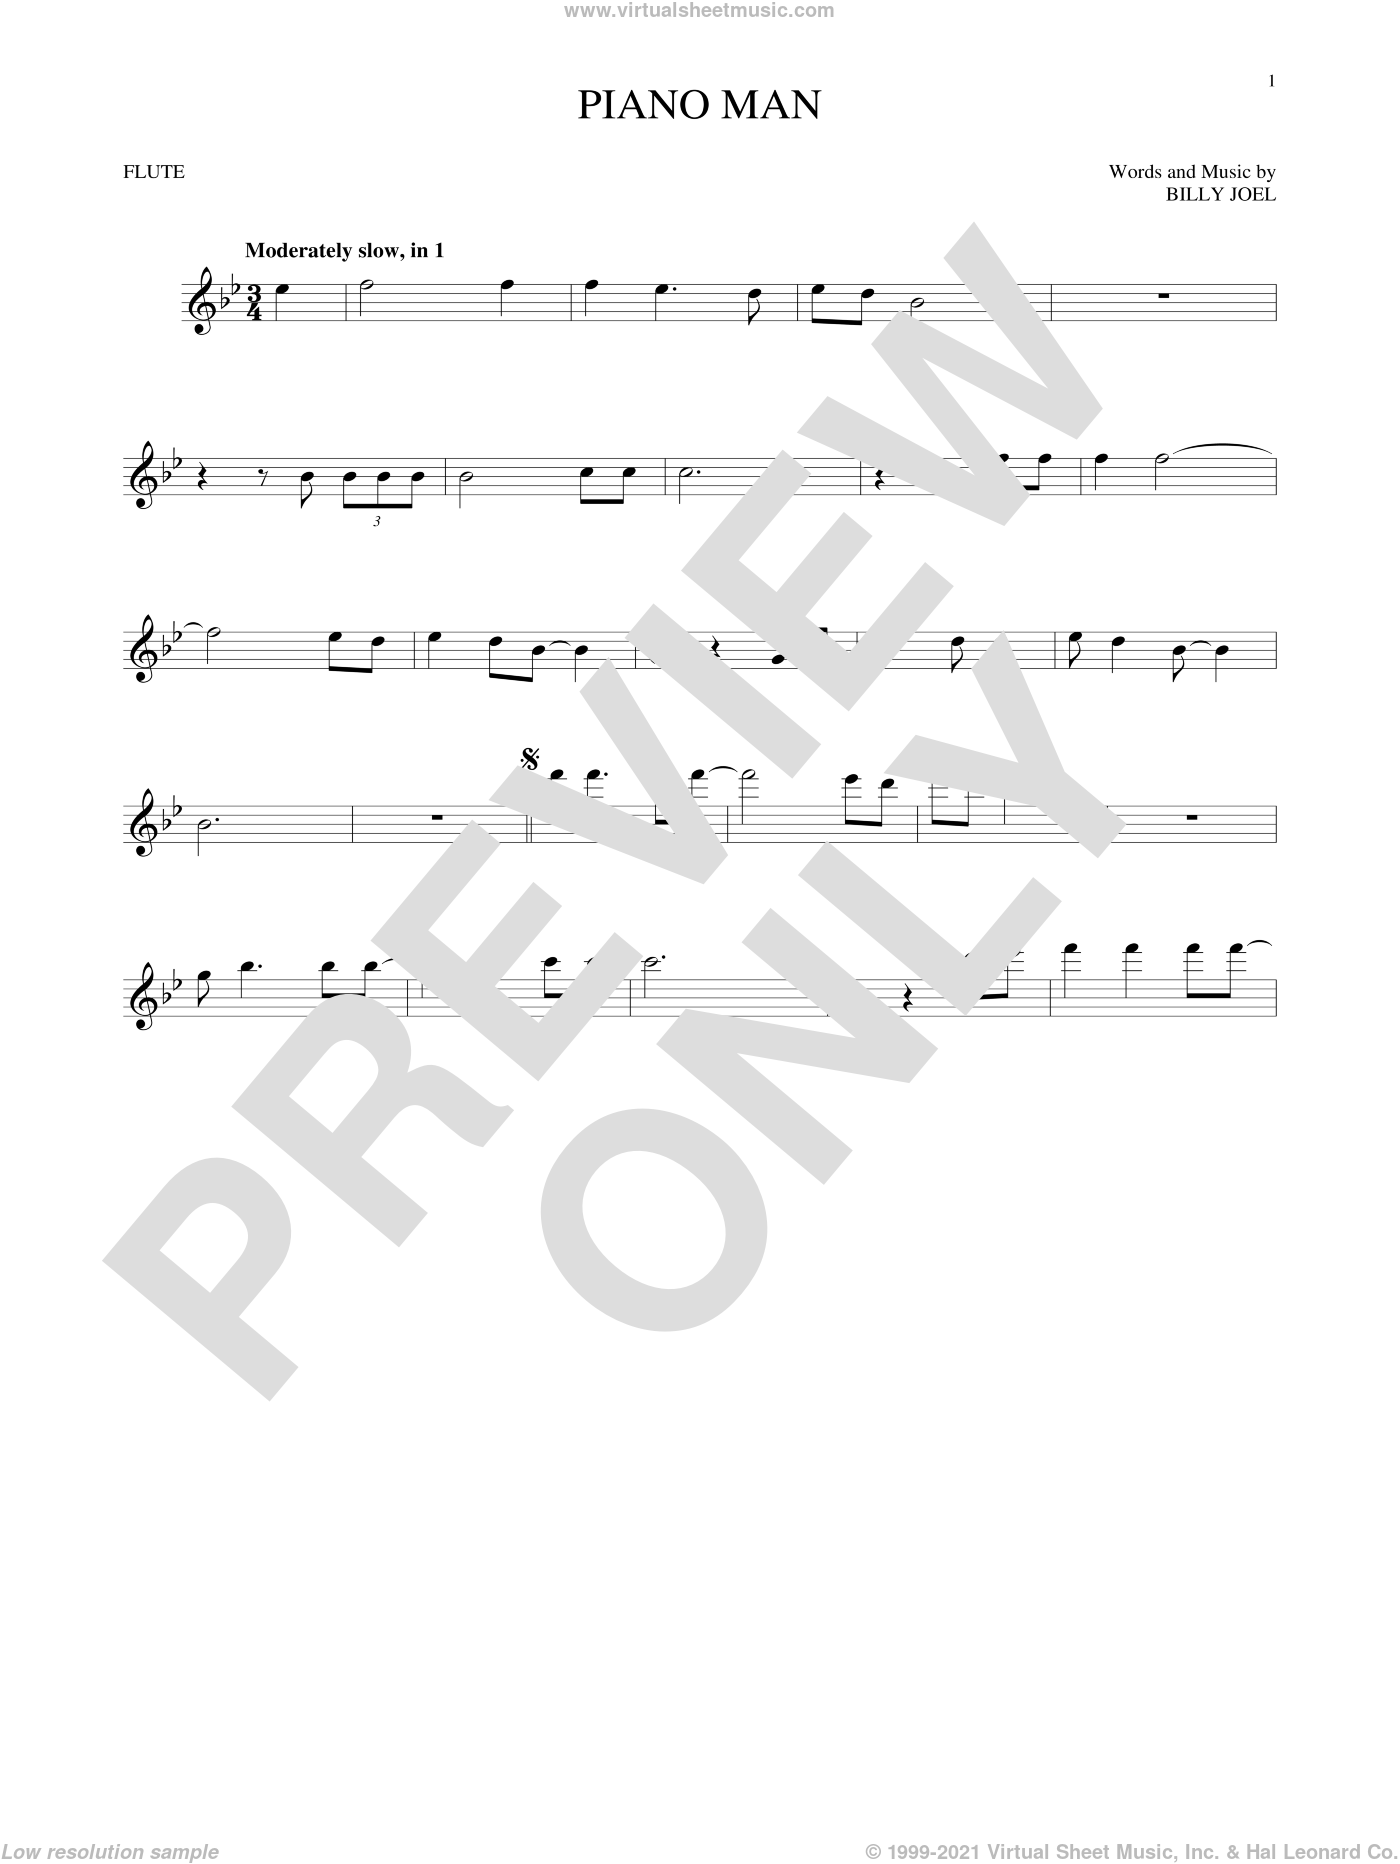 Piano Man sheet music for flute solo by Billy Joel. Score Image Preview.